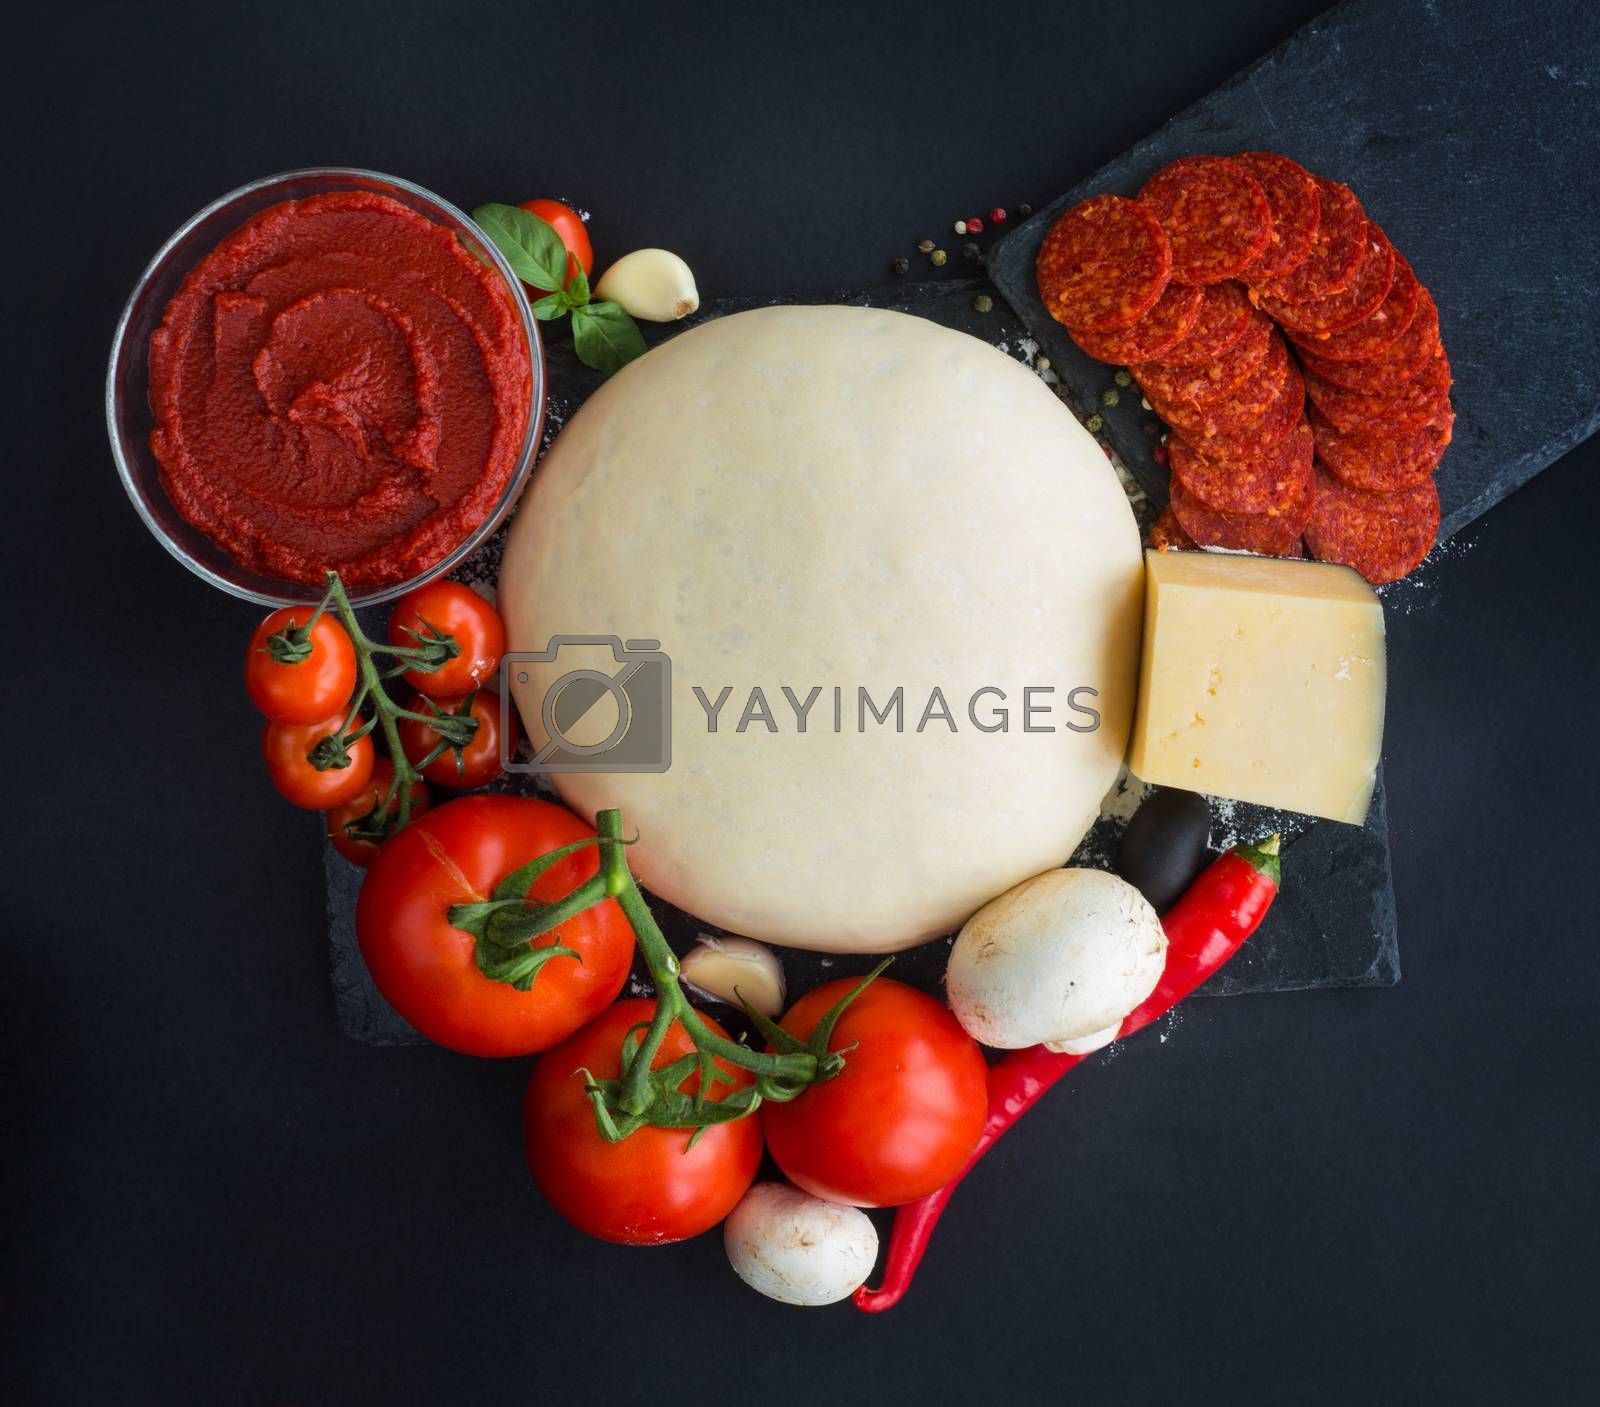 Raw dough for pizza and ingredients and spices on black table background in heart shape love food of Valentines day concept